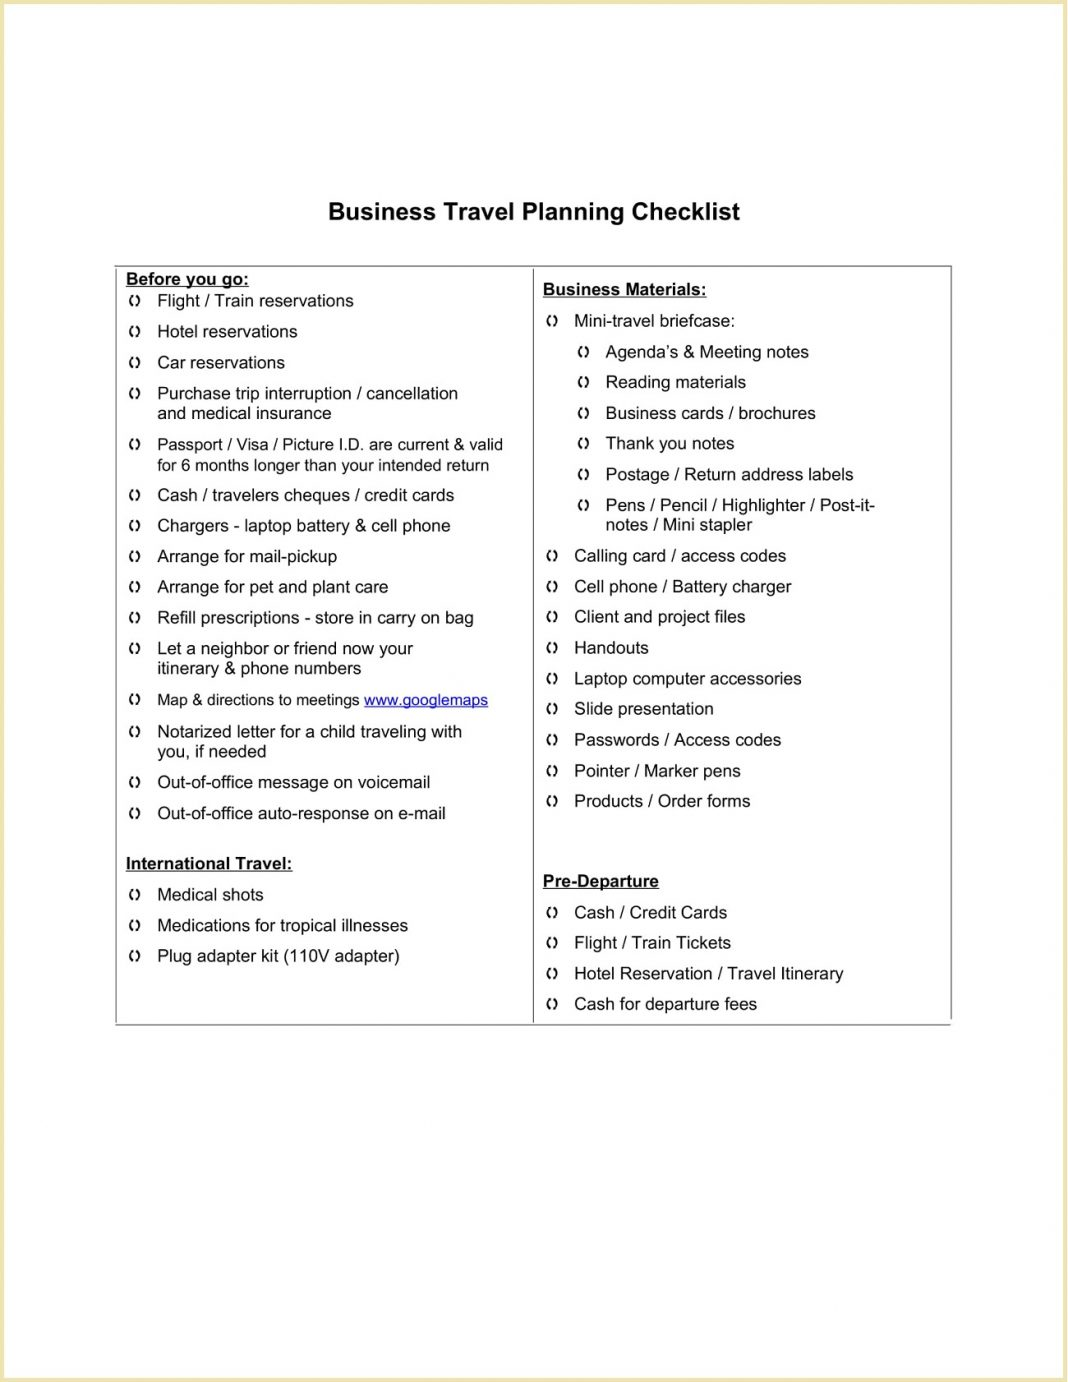 Business Travel Planning Checklist Template Word Doc Executive Assistant Covid-19 Packing Tips Pdf  Example Large